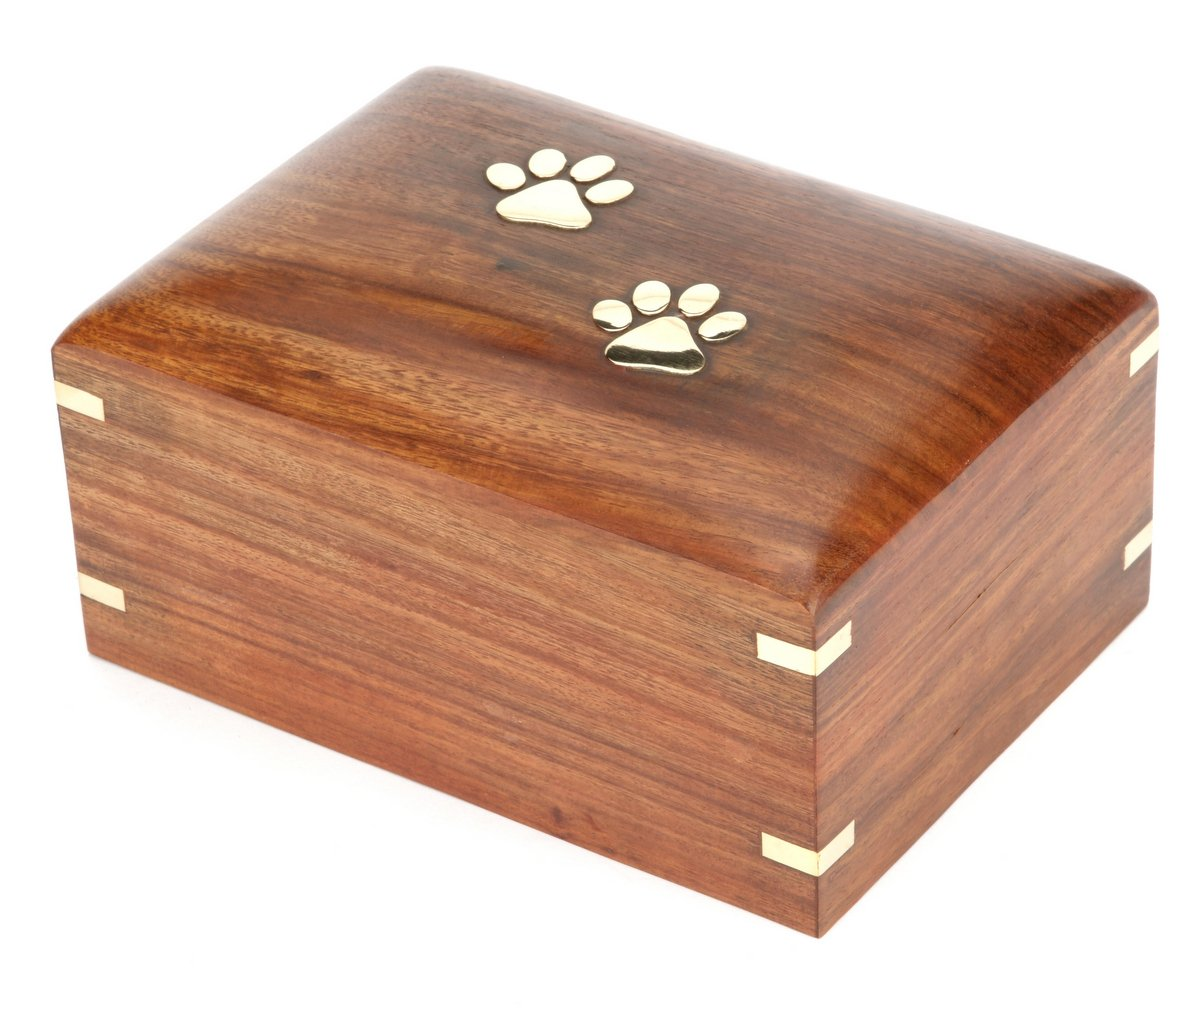 Urns UK Wooden Pet Cremation Urn for Ashes, Elstree 7  Medium